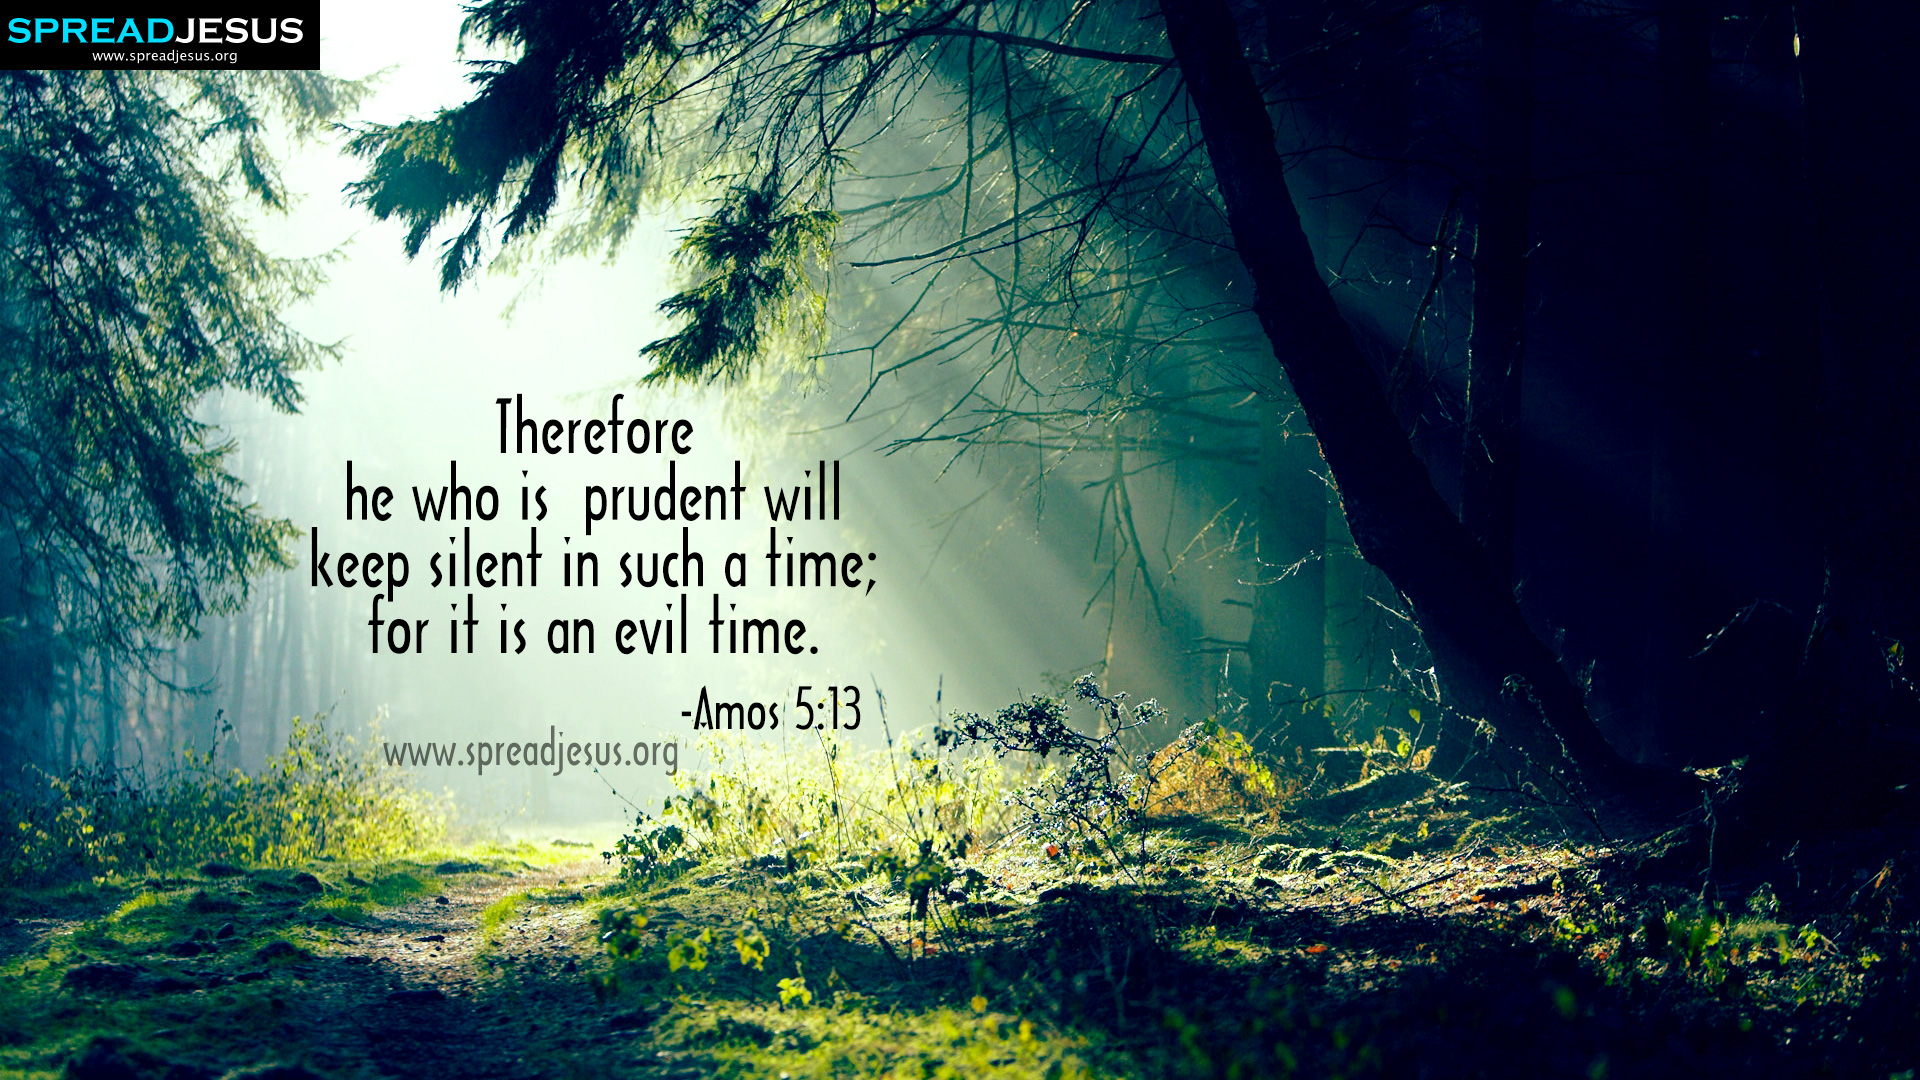 Amos 5 13 Bible Quotes Hd Wallpapers Facebook Timeline Covers